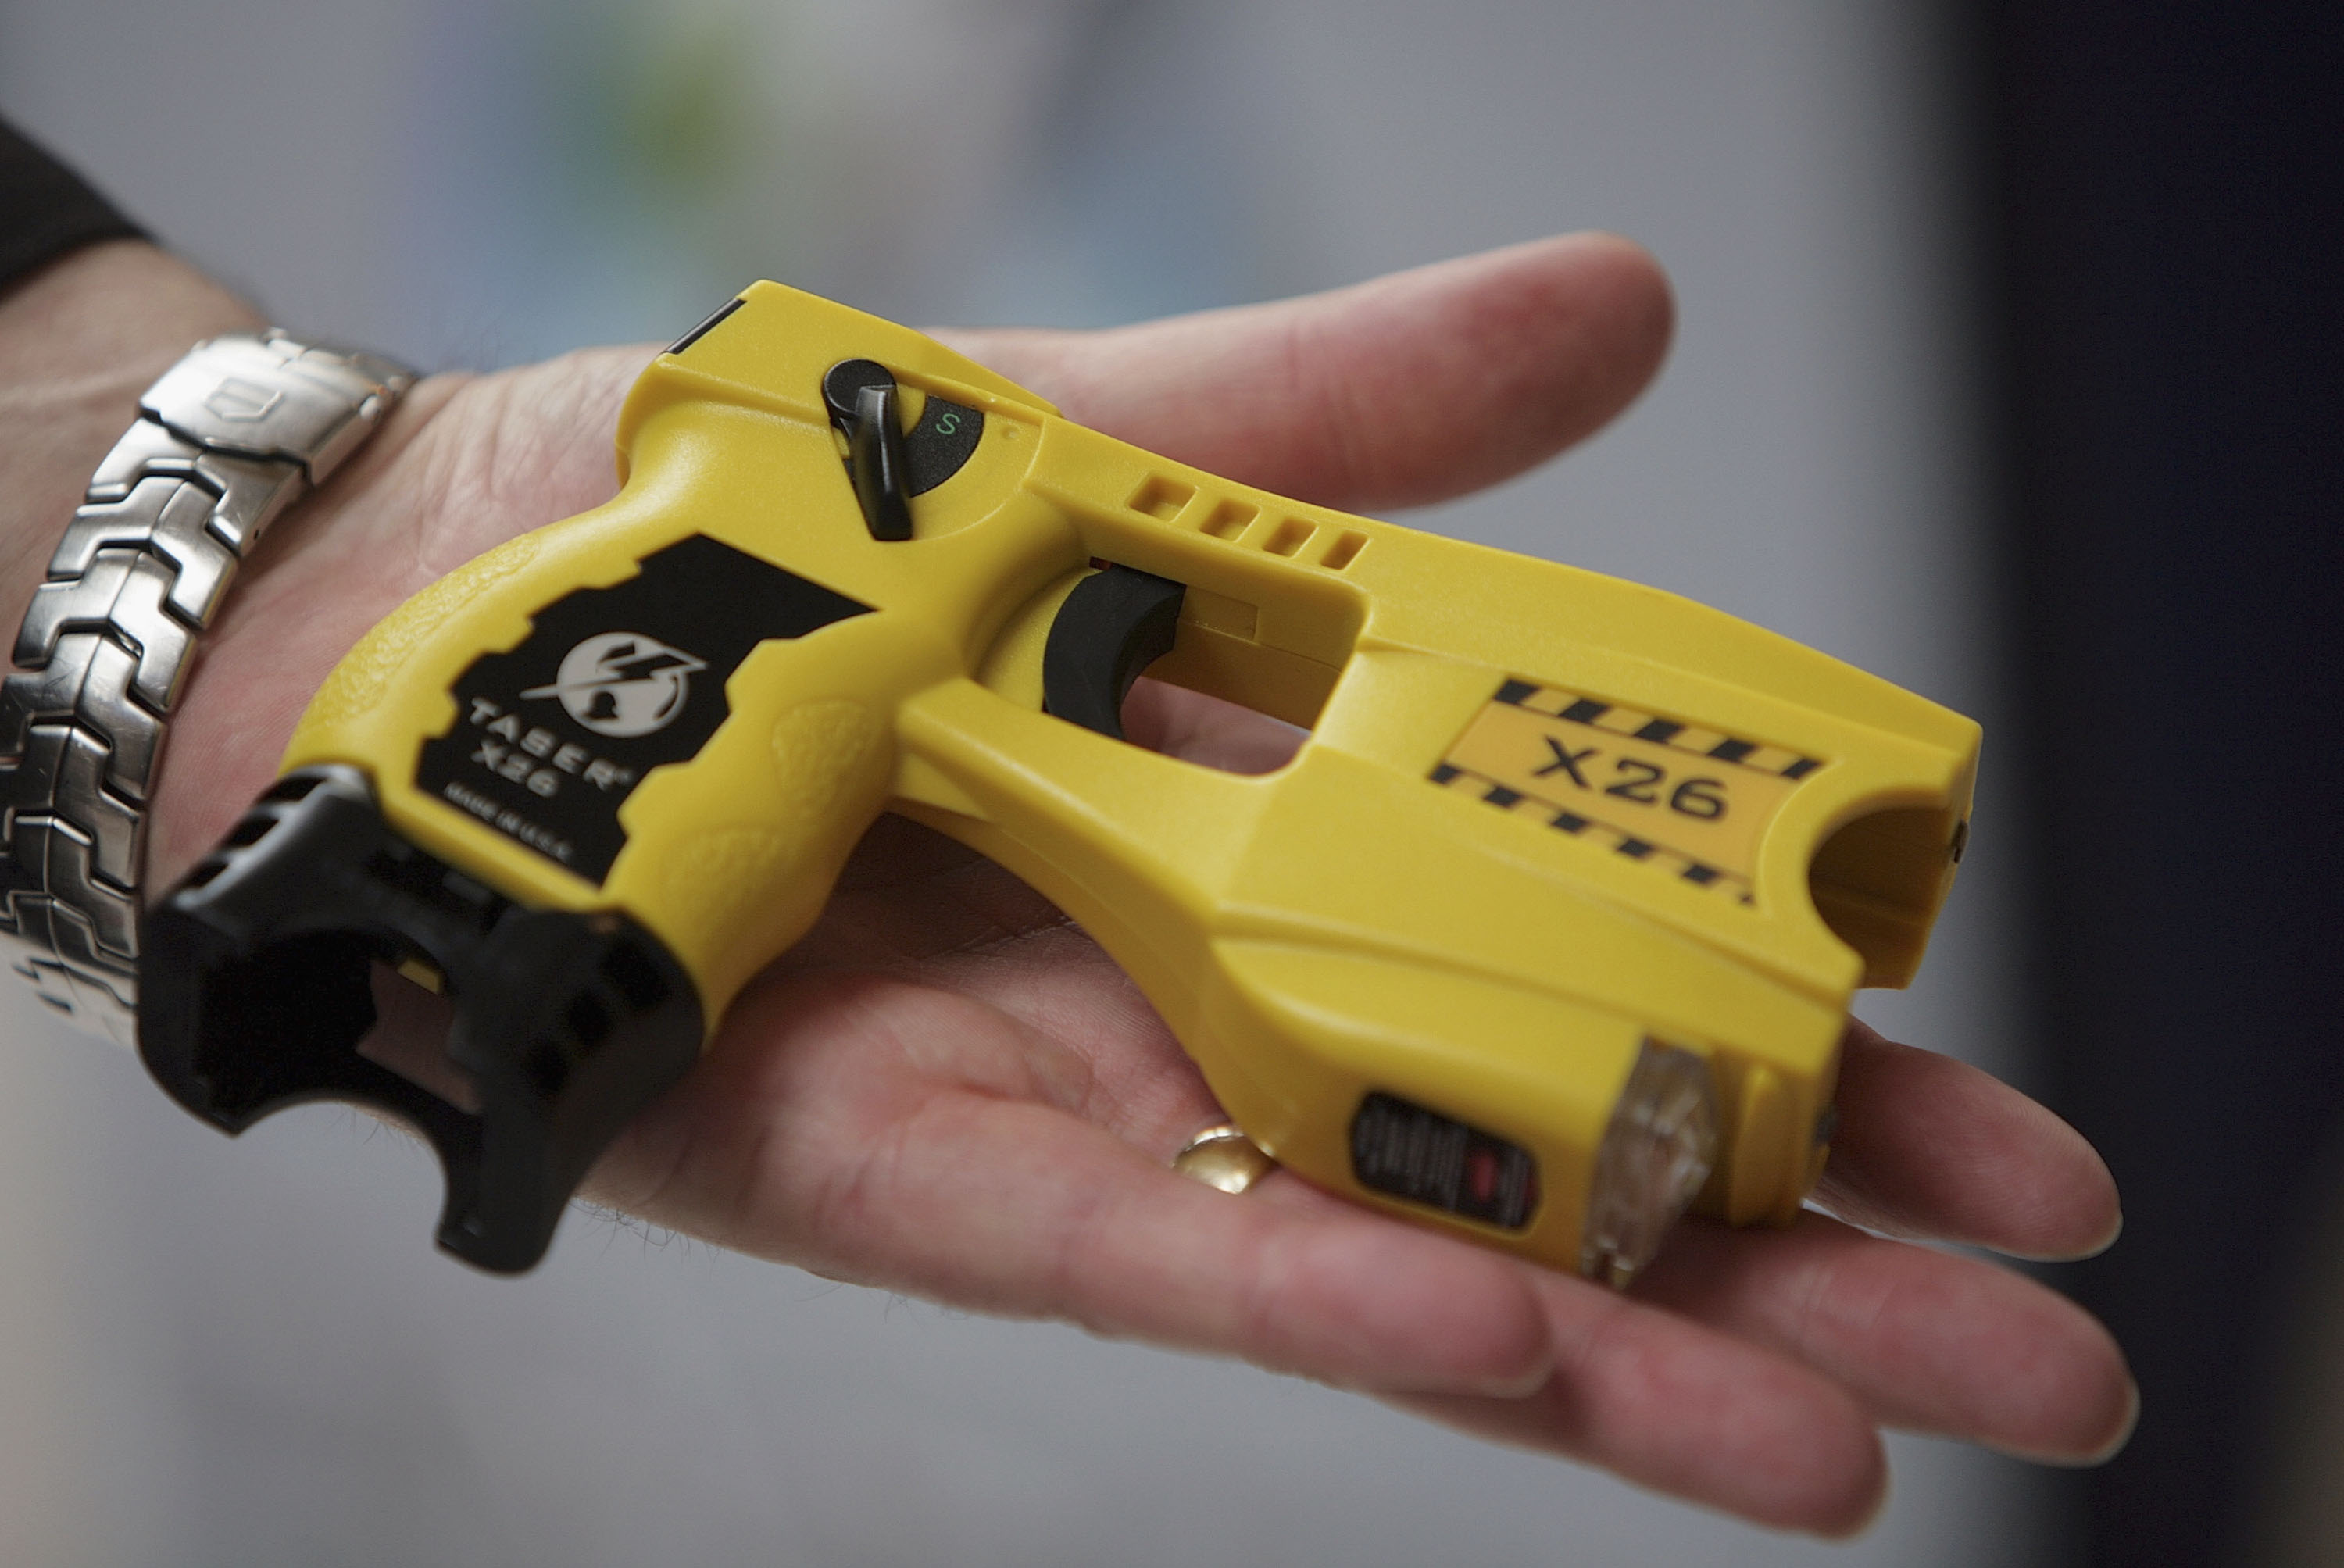 California Taser Stun Gun Laws